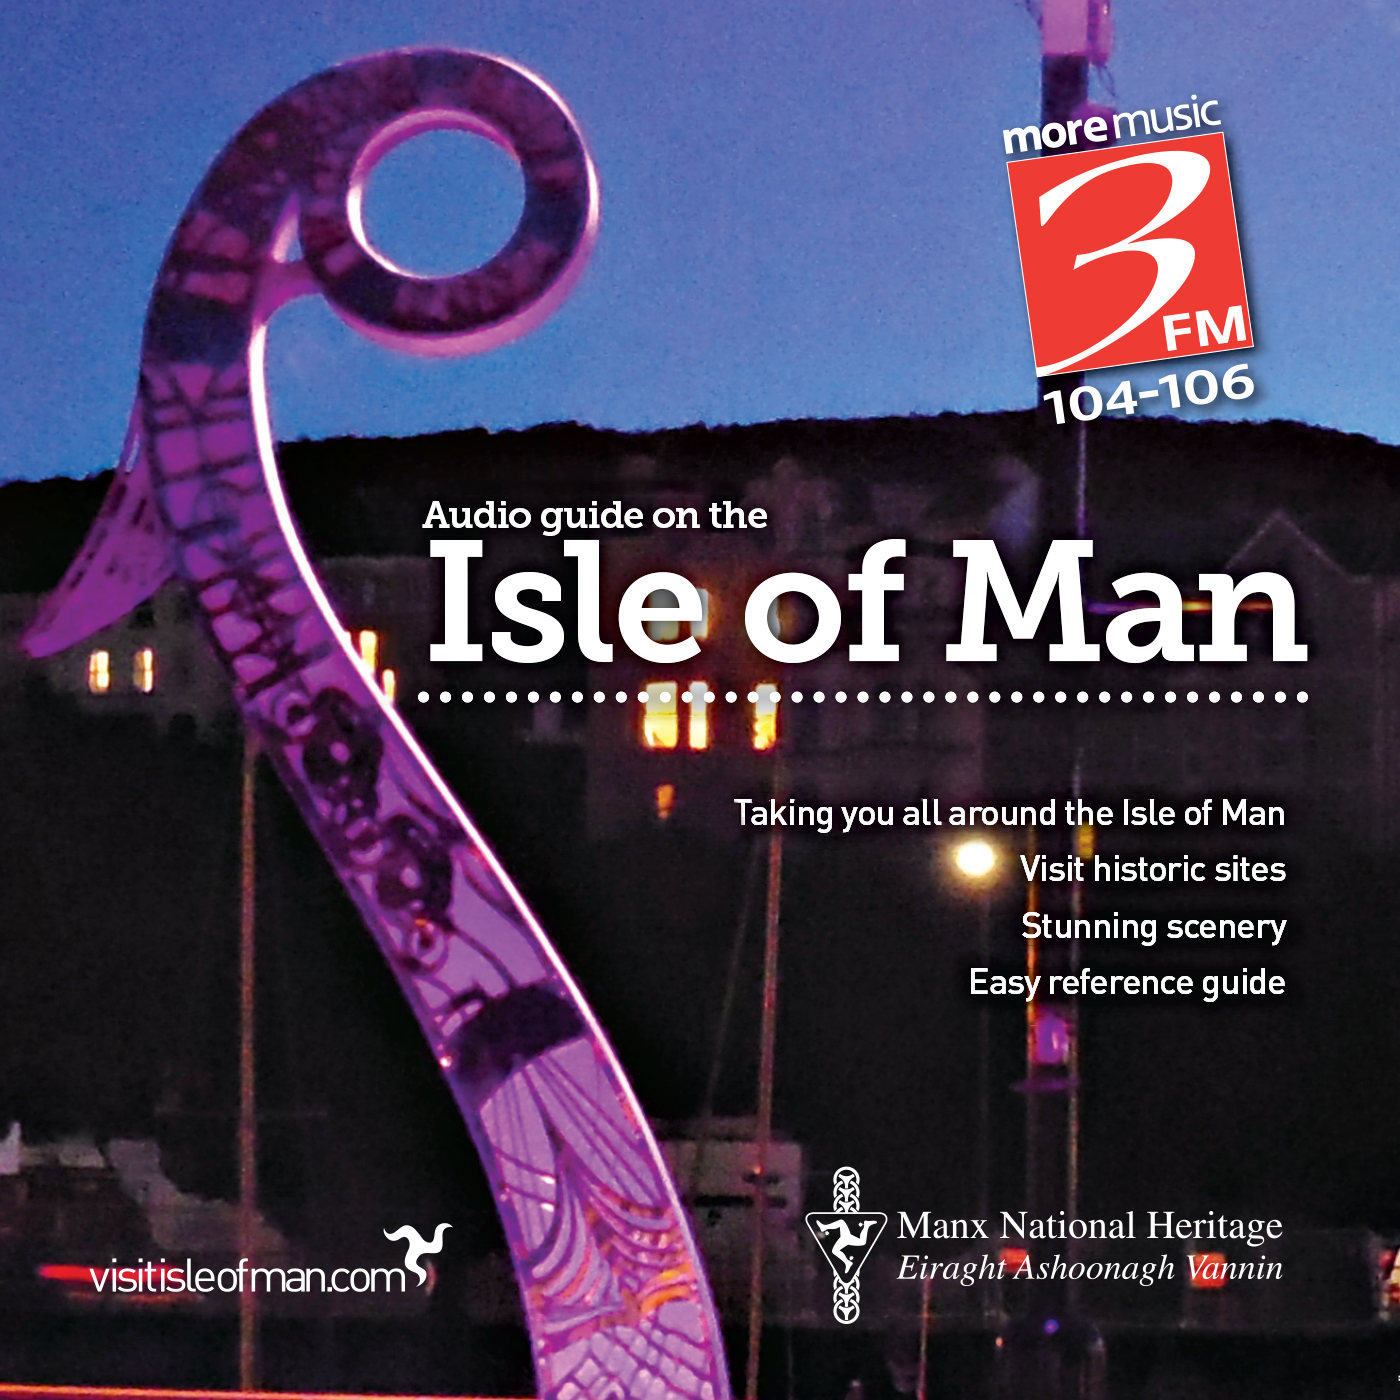 3FM's Audio Guide to the Isle of Man